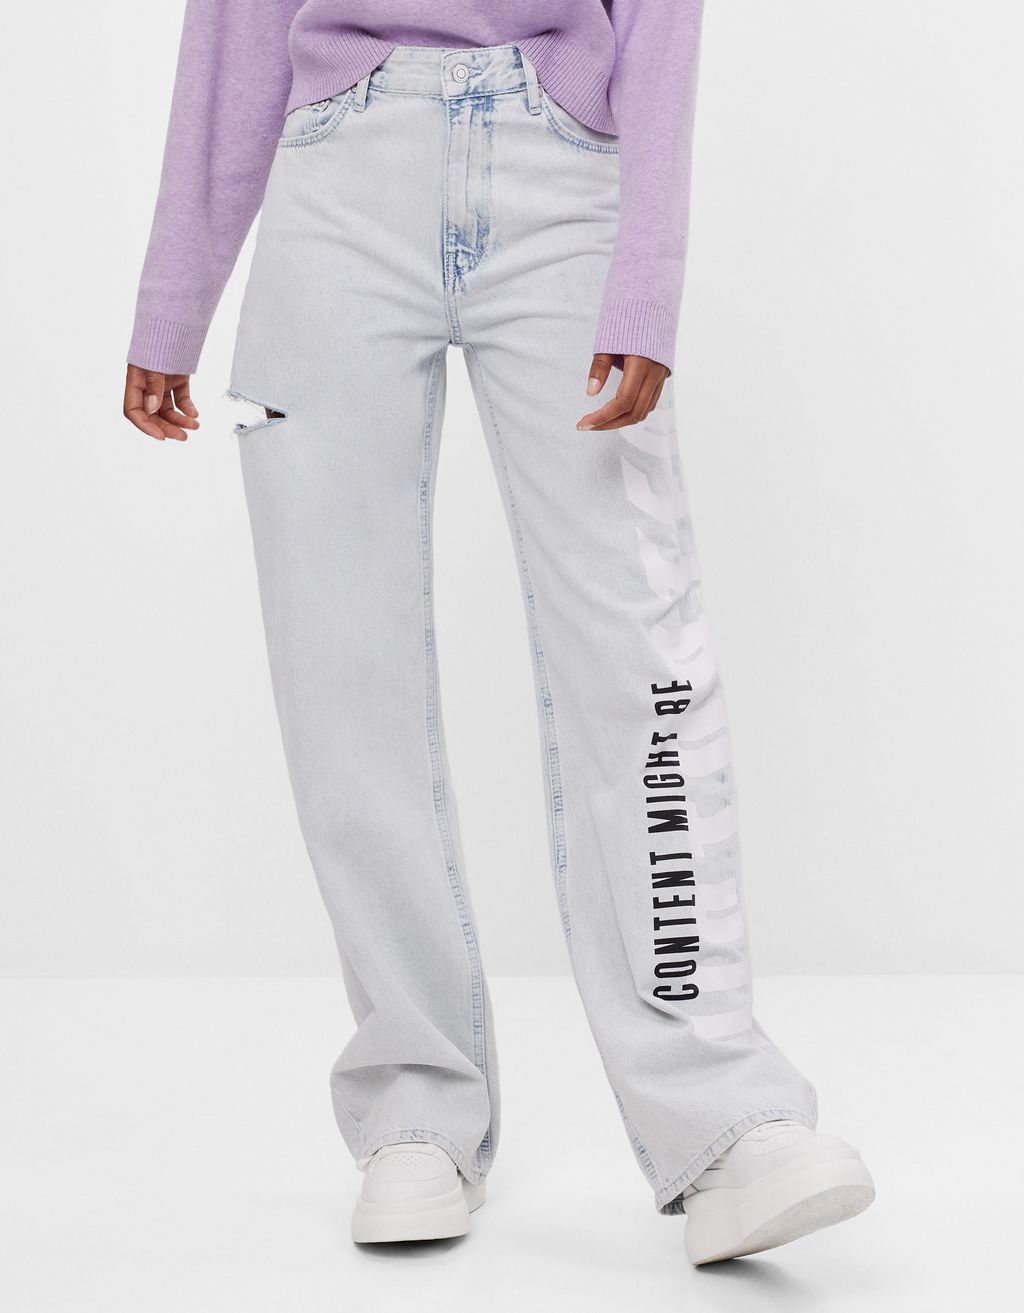 UV React straight fit jeans - Woman